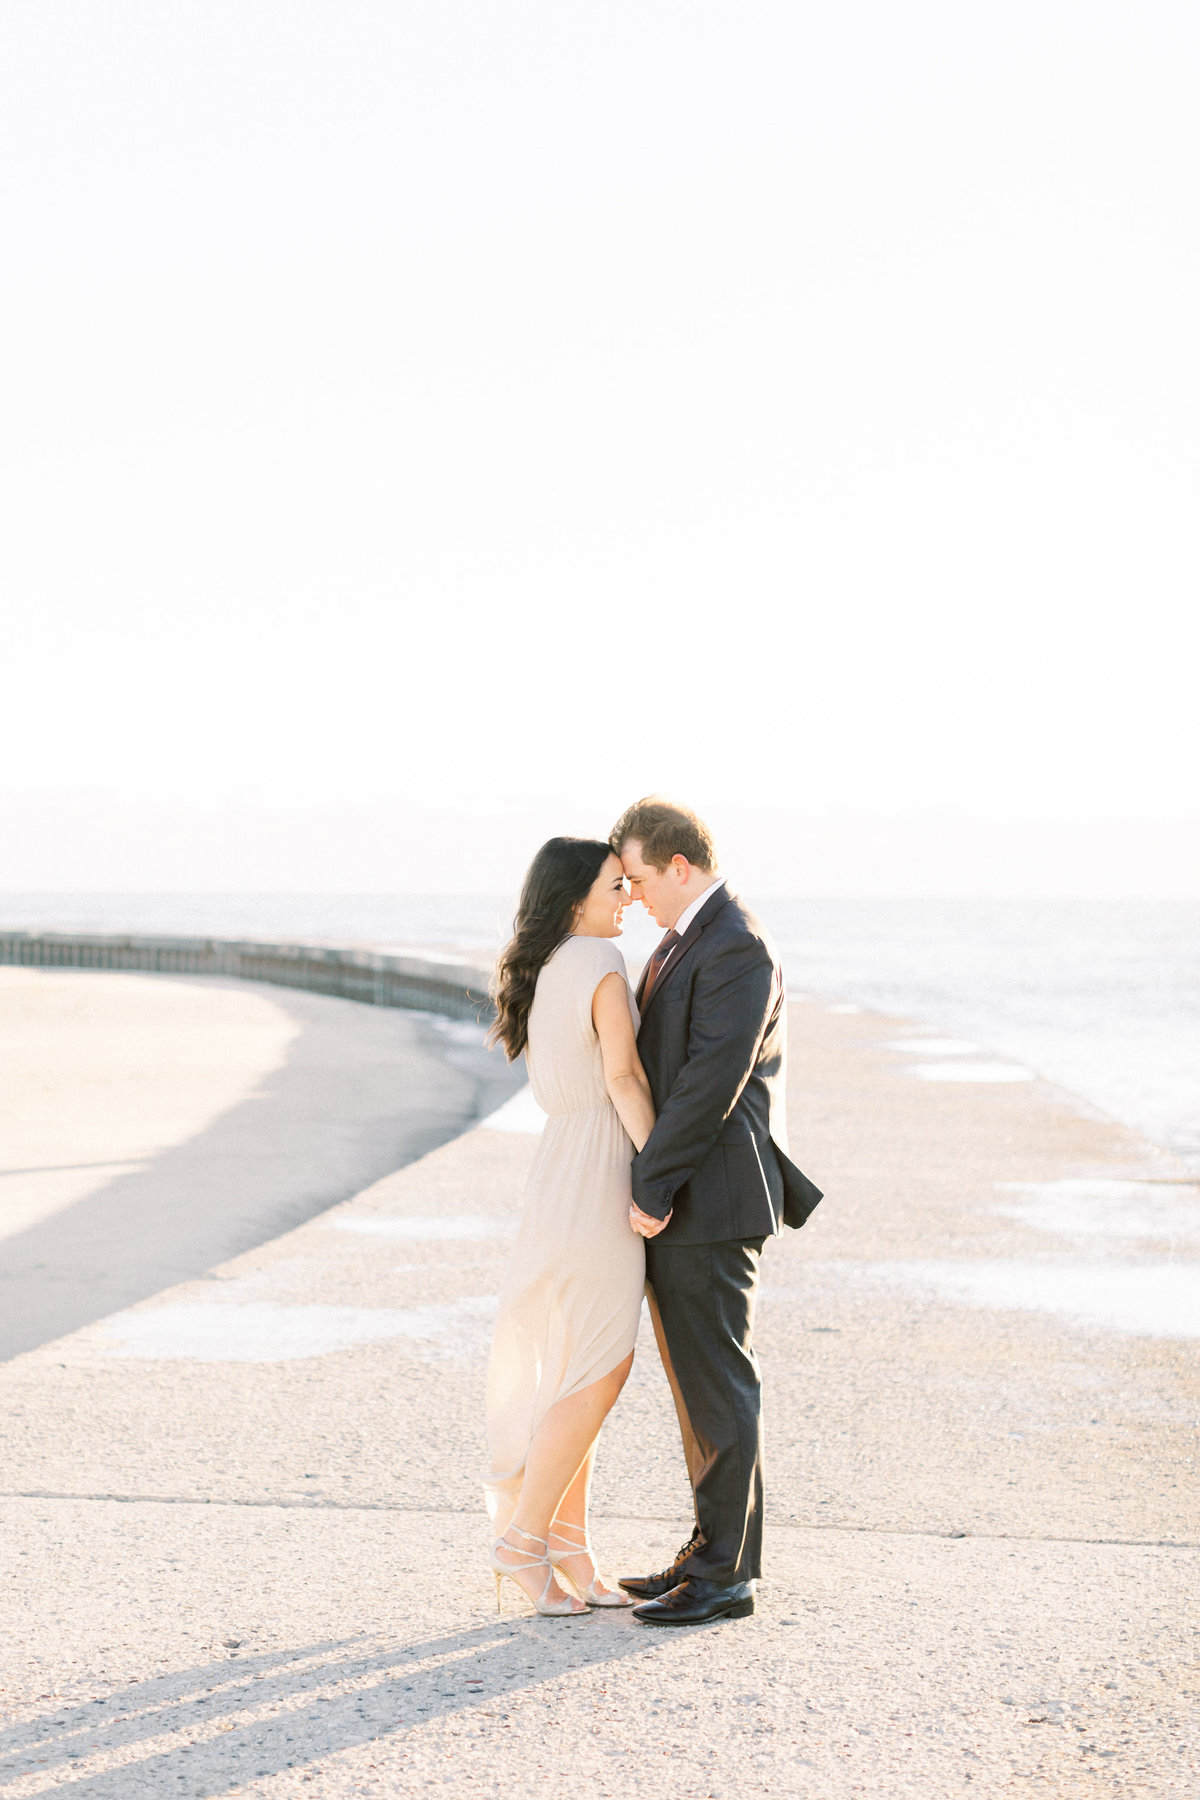 TiffaneyChildsPhotography-ChicagoWeddingPhotographer-Frankie+Brian-NorthAvenueBeach&RiverwalkEngagementSession-72